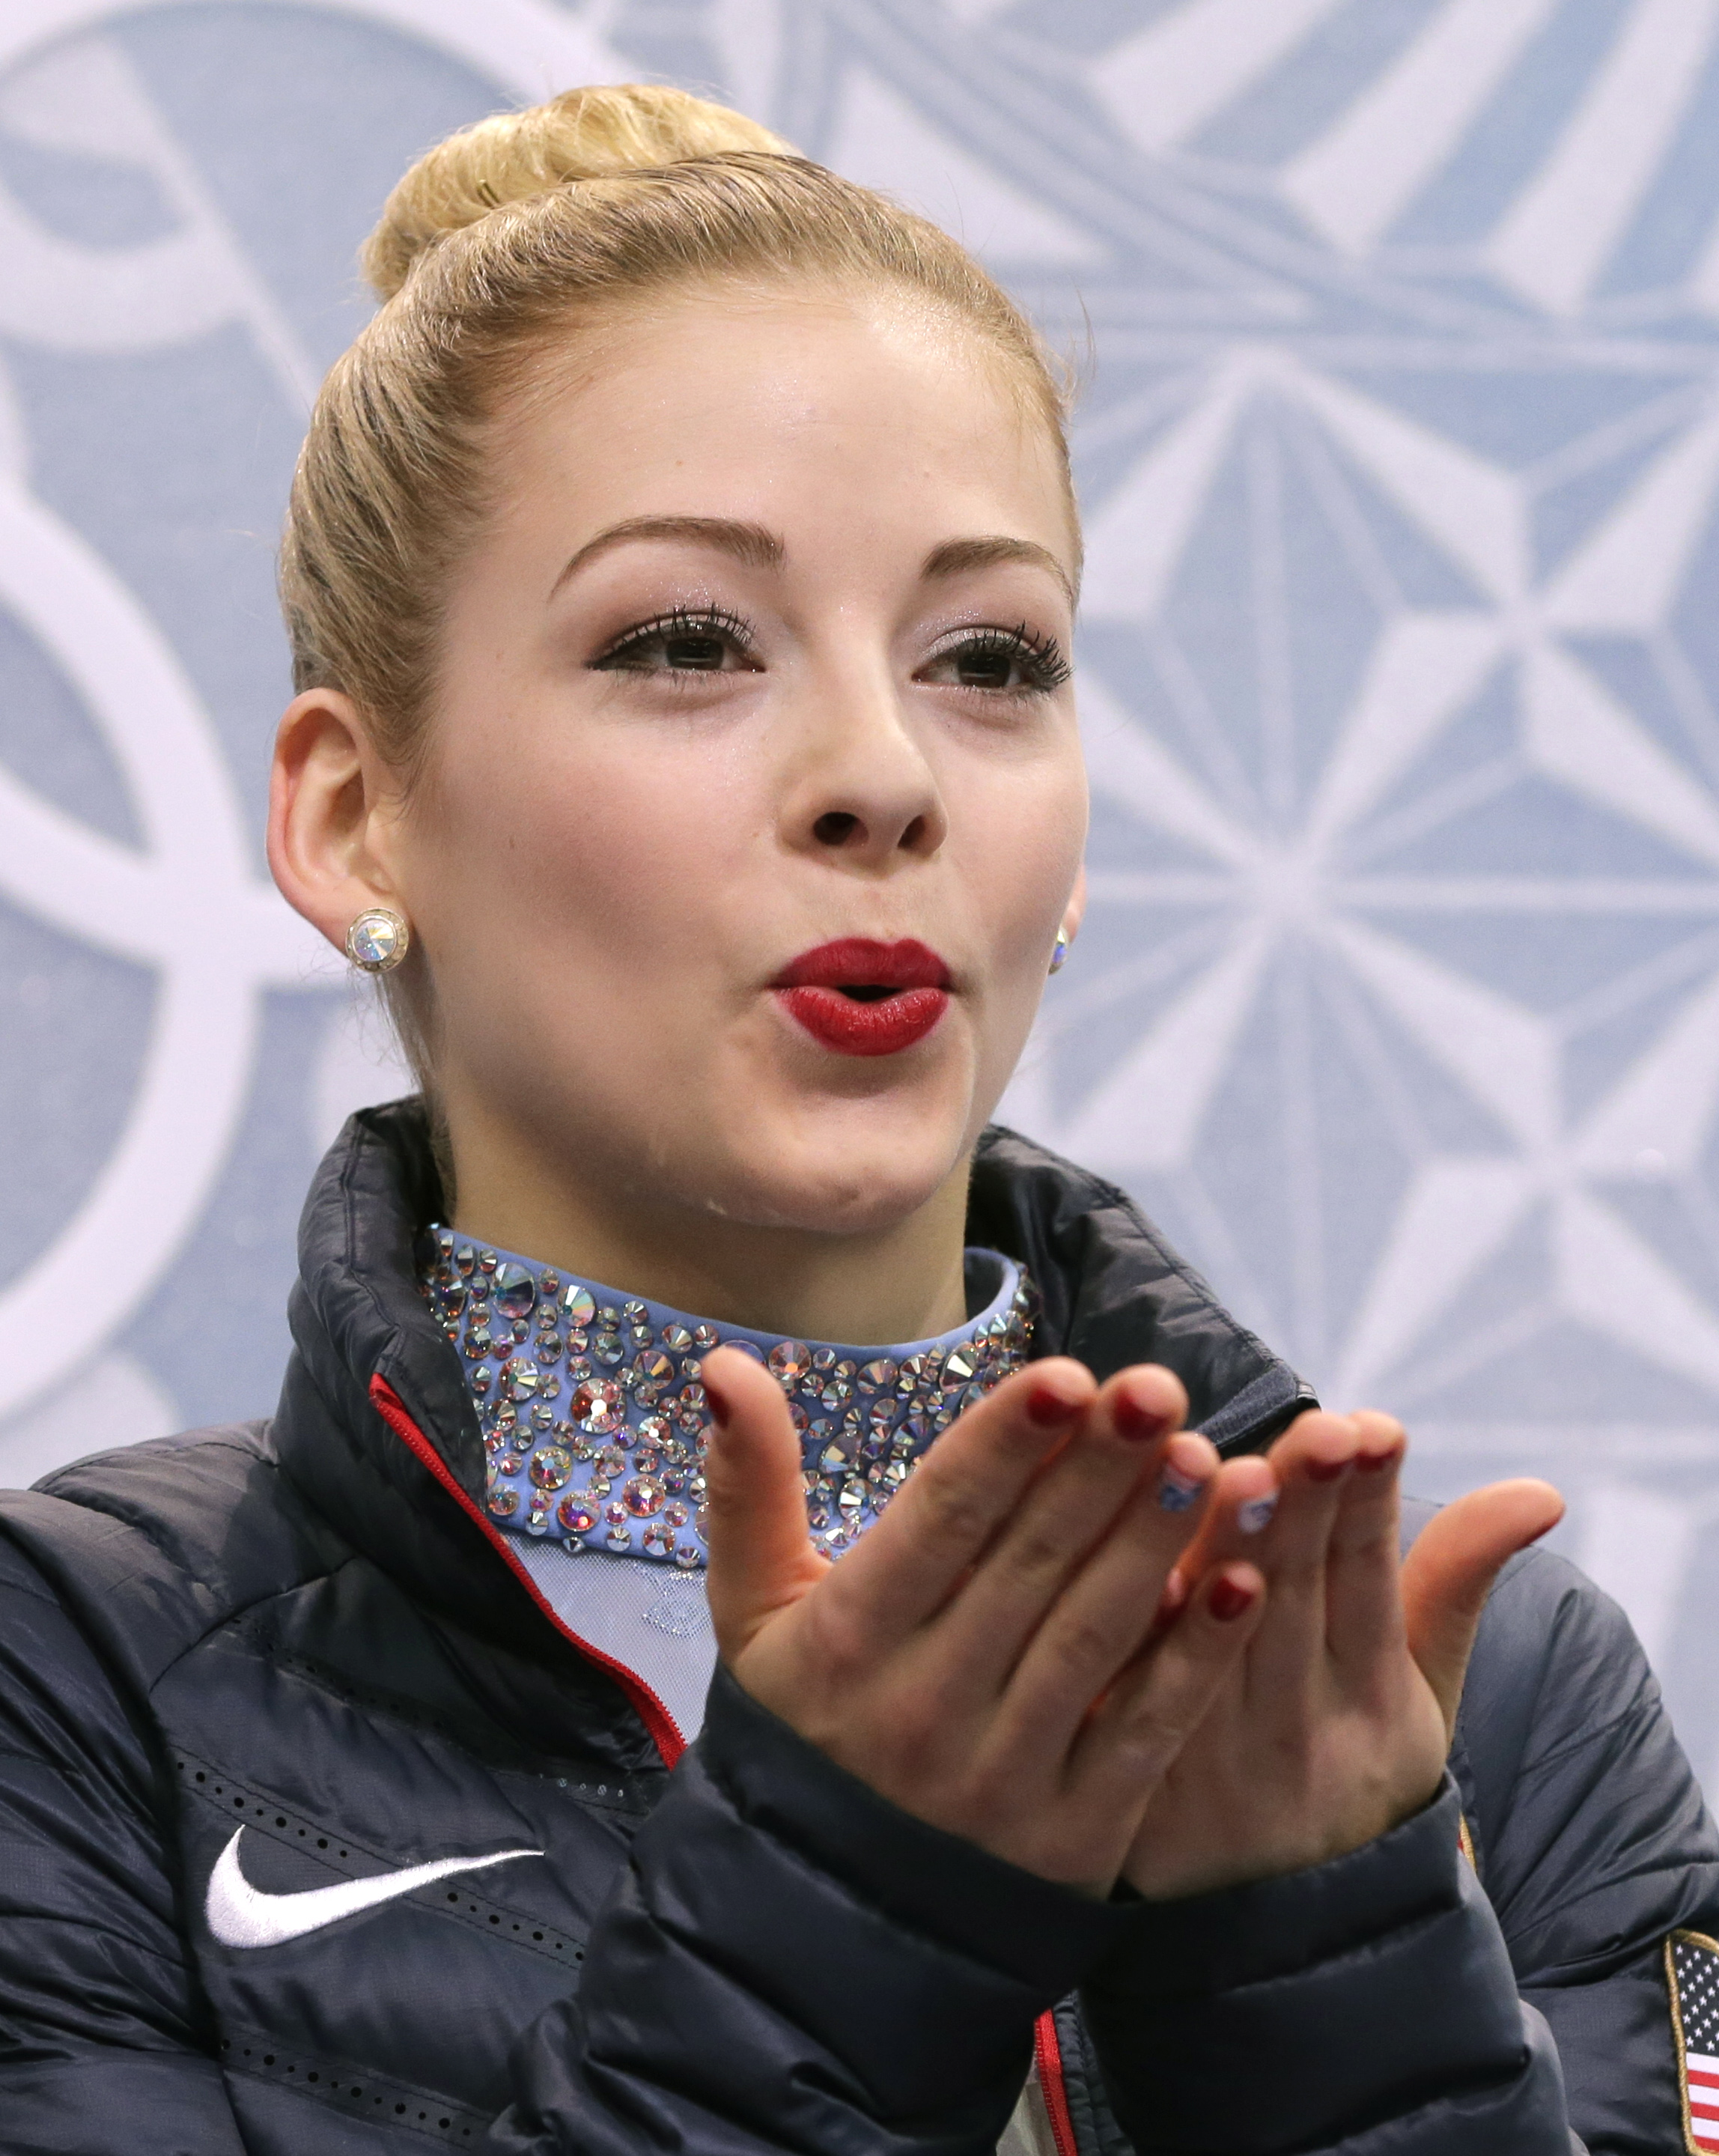 Gracie Gold of the United States blows a kiss to spectators as she waits in the results area after completing her routine in the women's free skate figure skating finals at the Iceberg Skating Palace during the 2014 Winter Olympics, Thursday, Feb. 20, 2014, in Sochi, Russia. (AP Photo/Bernat Armangue)